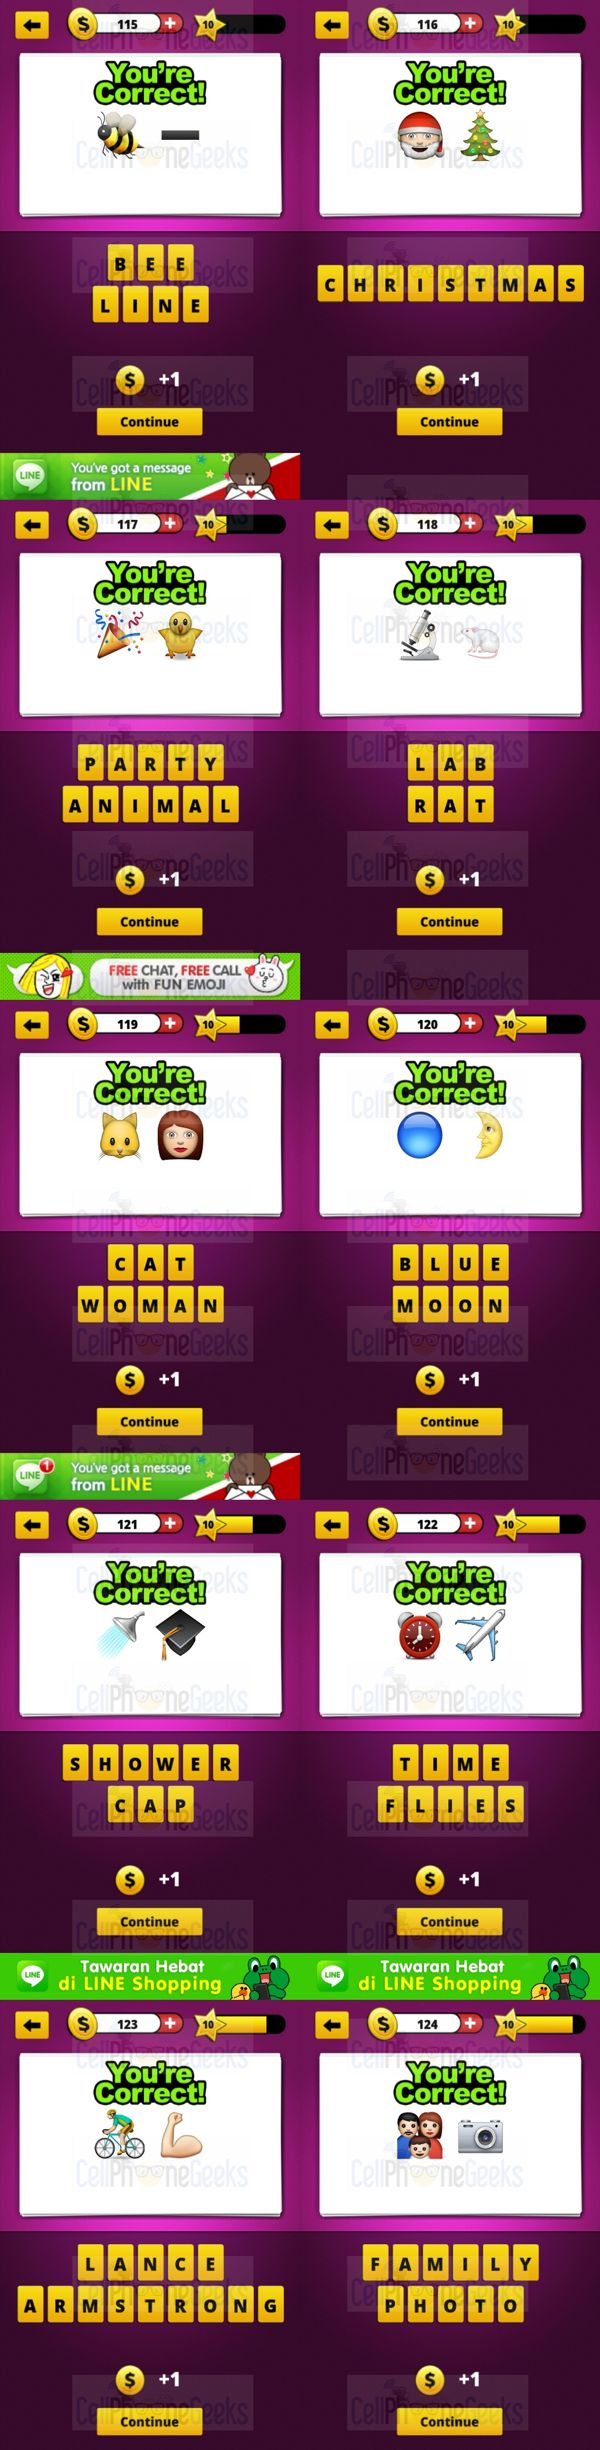 Guess The Emoji Level 10 Answers Cellphonegeeks Guess The Emoji Answers Guess The Emoji Emoji Answers